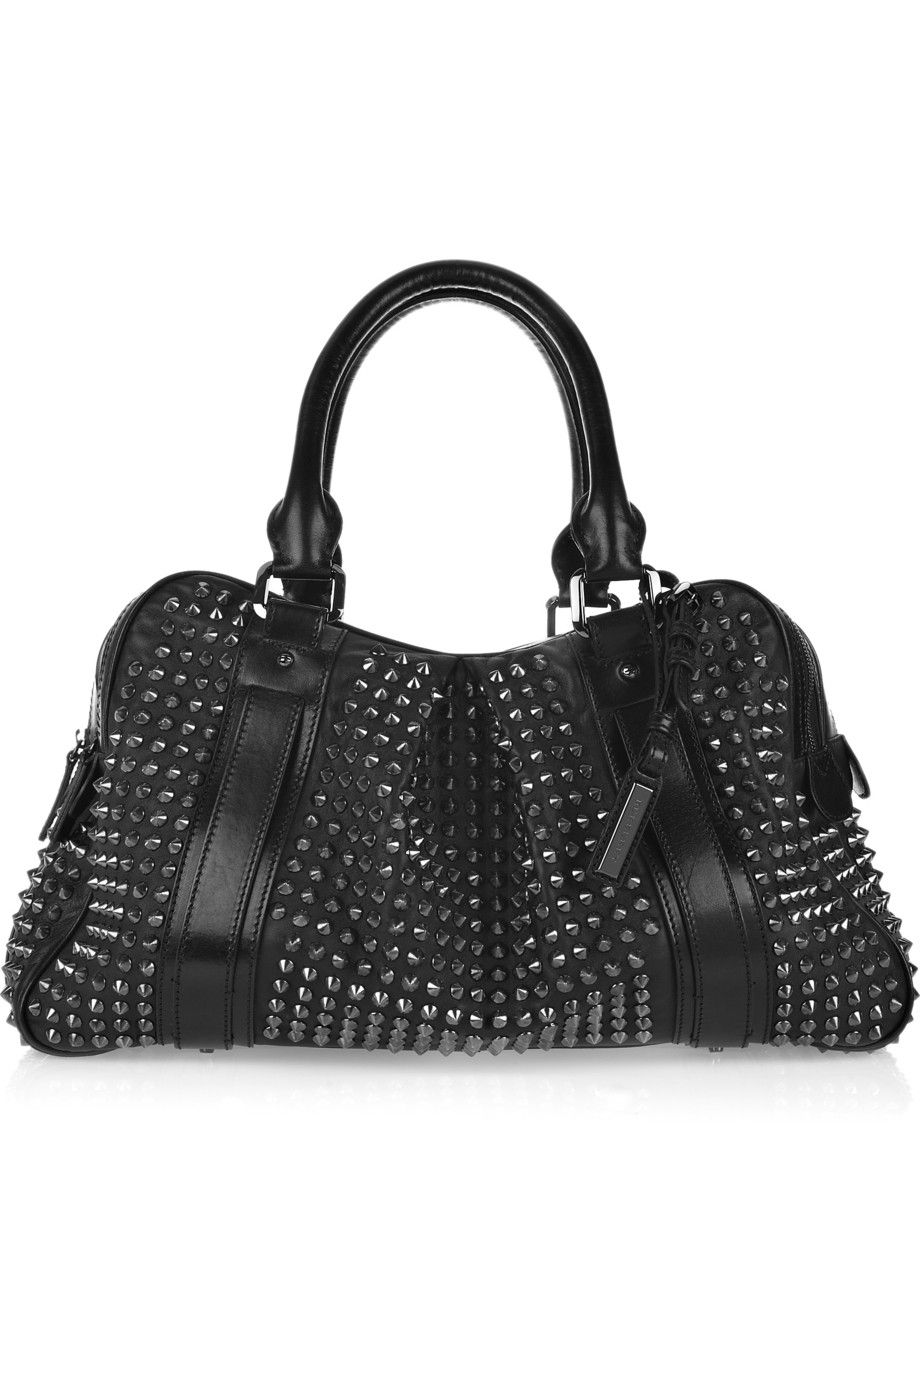 Burberry Shoes Accessories Knight Studded Leather Bag